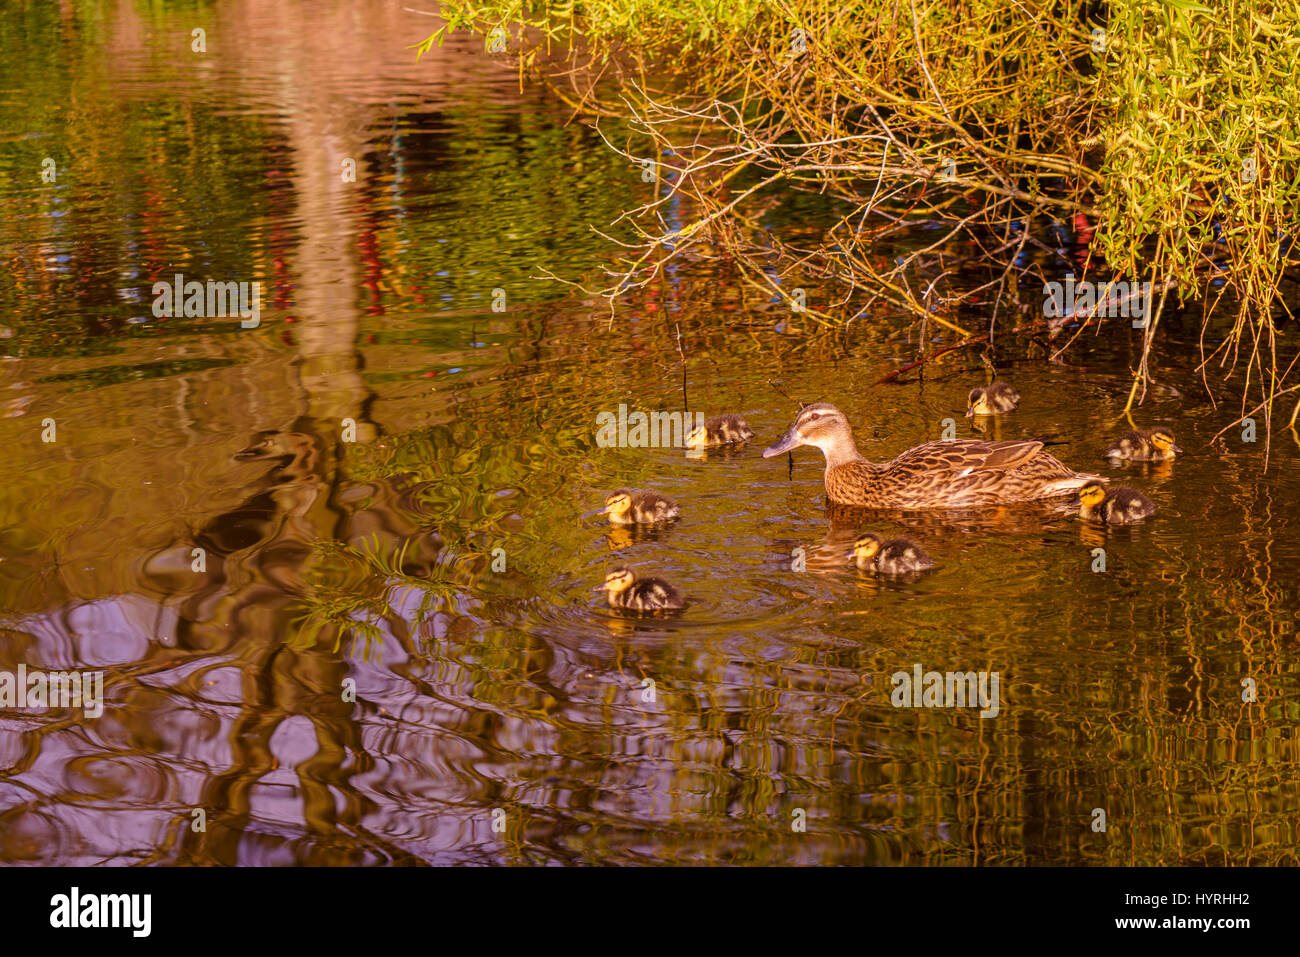 A mother duck and her family of newly born ducklings floating on the pond - Stock Image